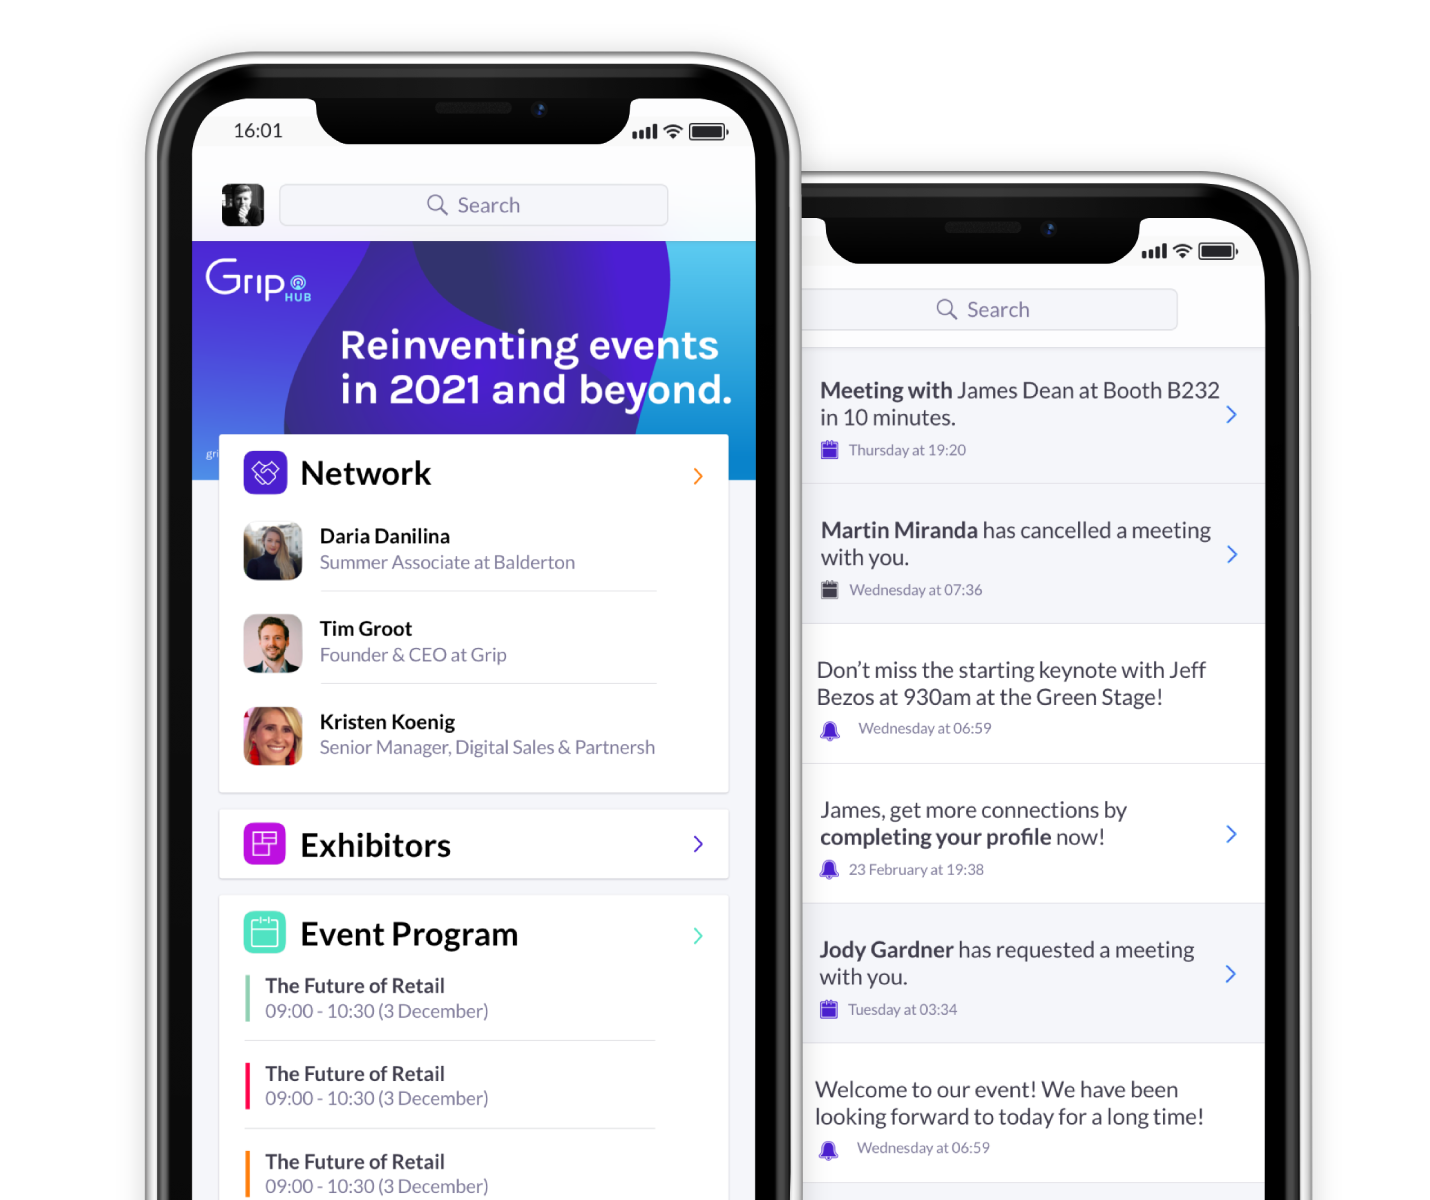 A visual about the Grip platform for event on an iphone app, showing meetings and event agenda